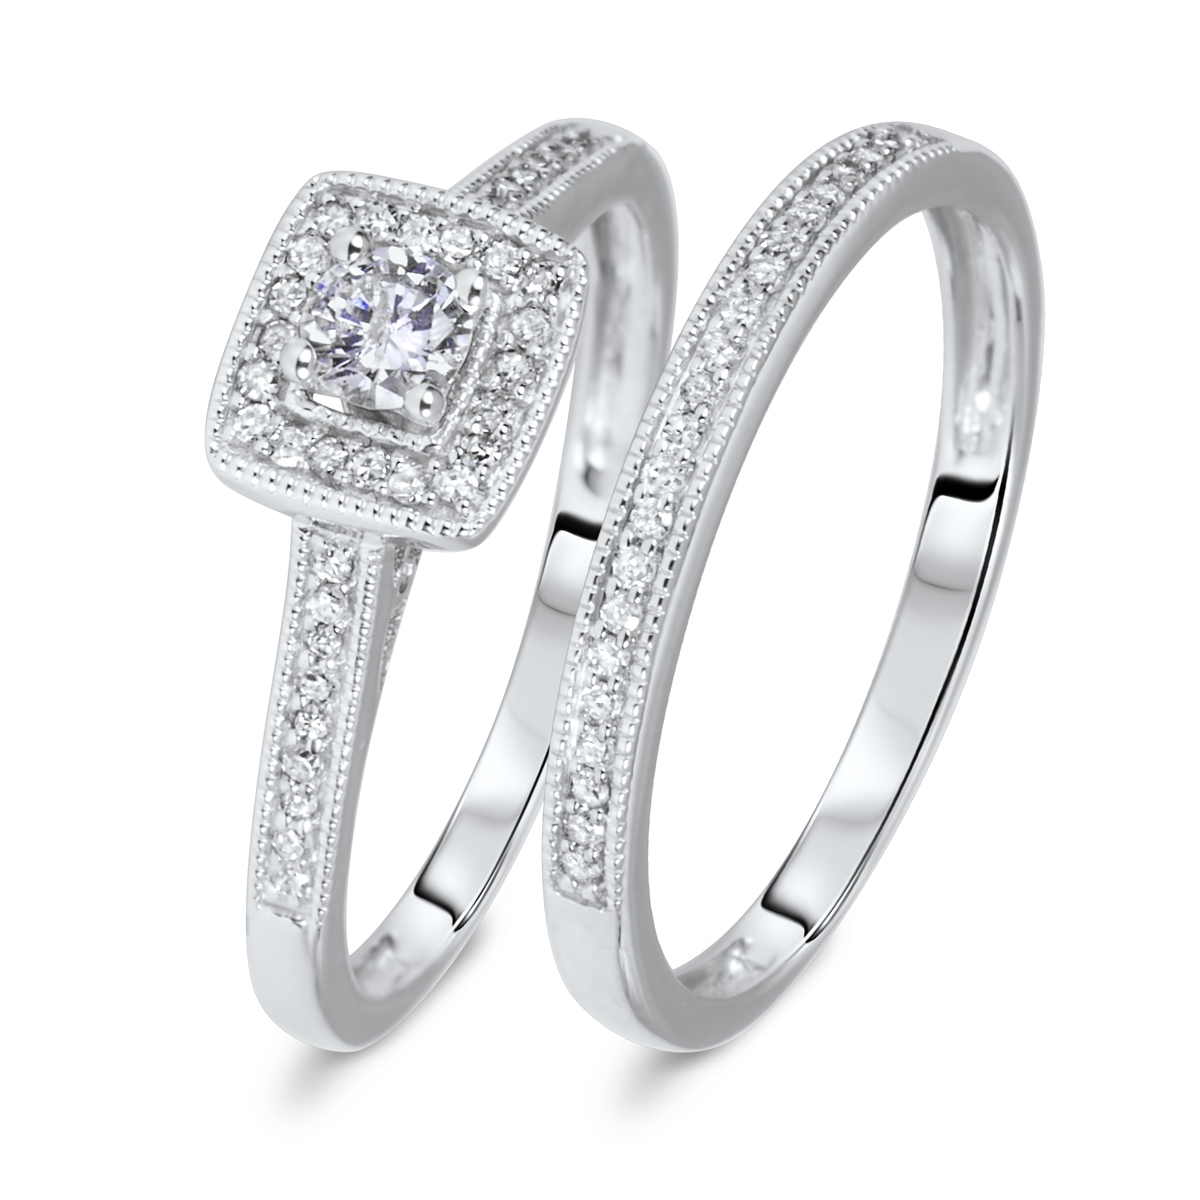 Charmant T.W. Round Cut Diamond Ladies Bridal Wedding Ring Set 10K White Gold